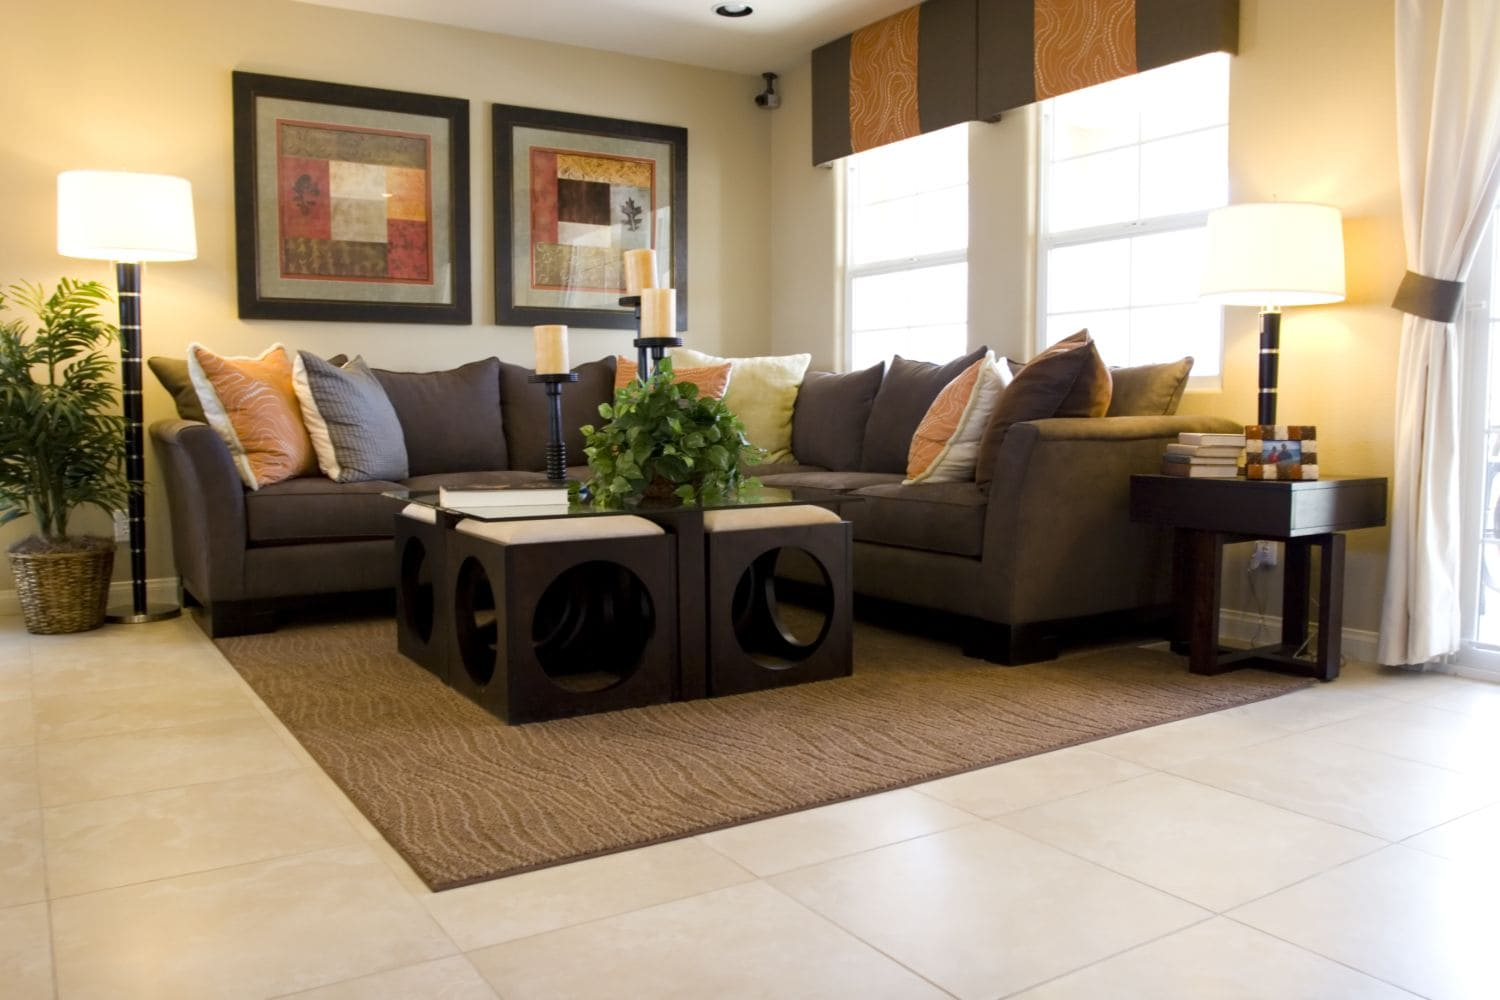 10 Cheap Sectional Sofas Under 500 You Ll Love In 2020 Swankyden